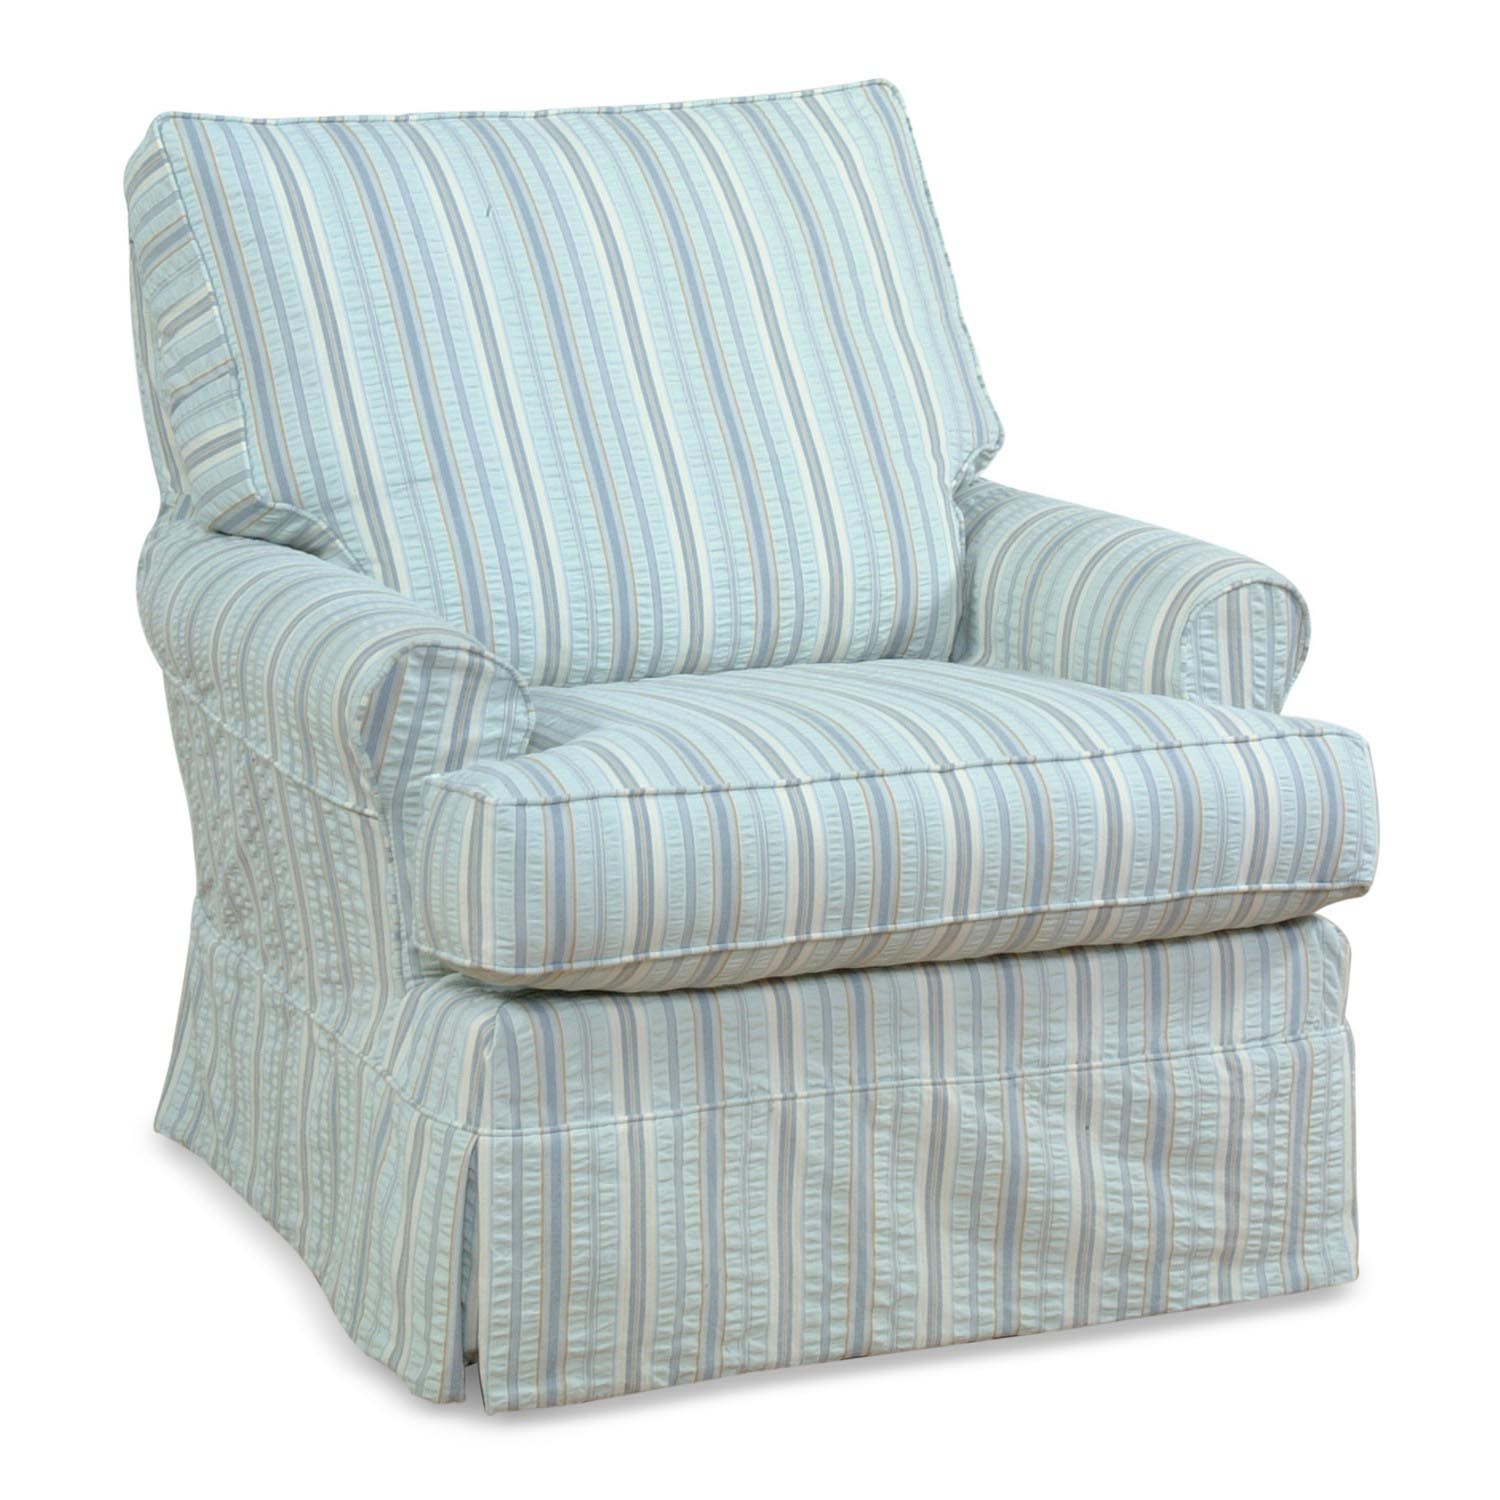 Picture of: Sarah Xl Accent Chair American Country